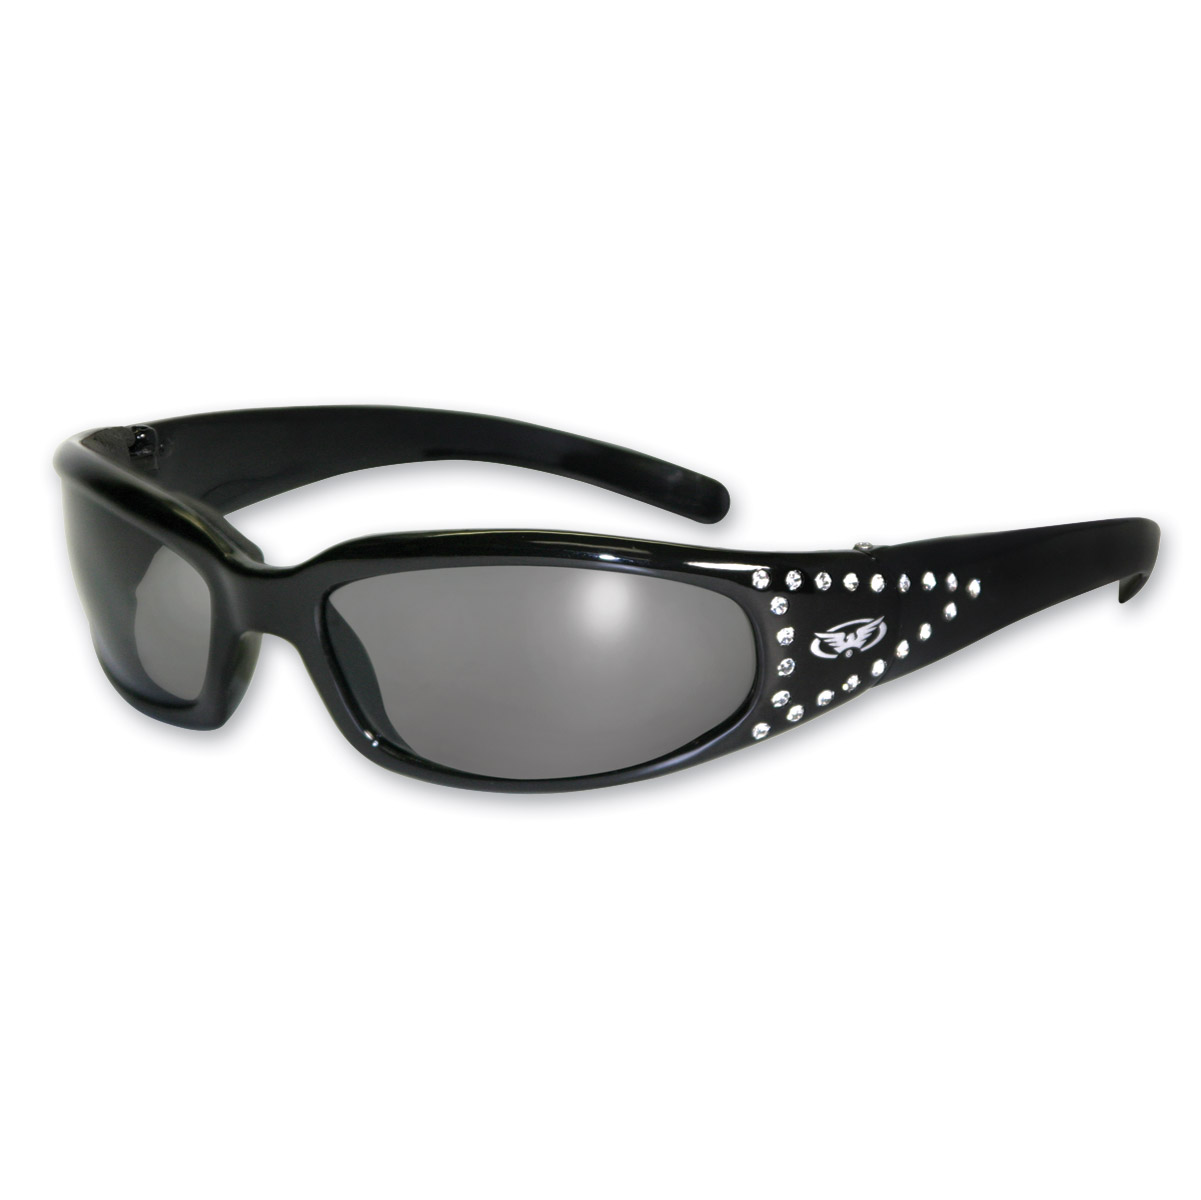 Global Vision Eyewear Marilyn 3 24 Black Frame Photochromatic Sunglasses with Rhinestones